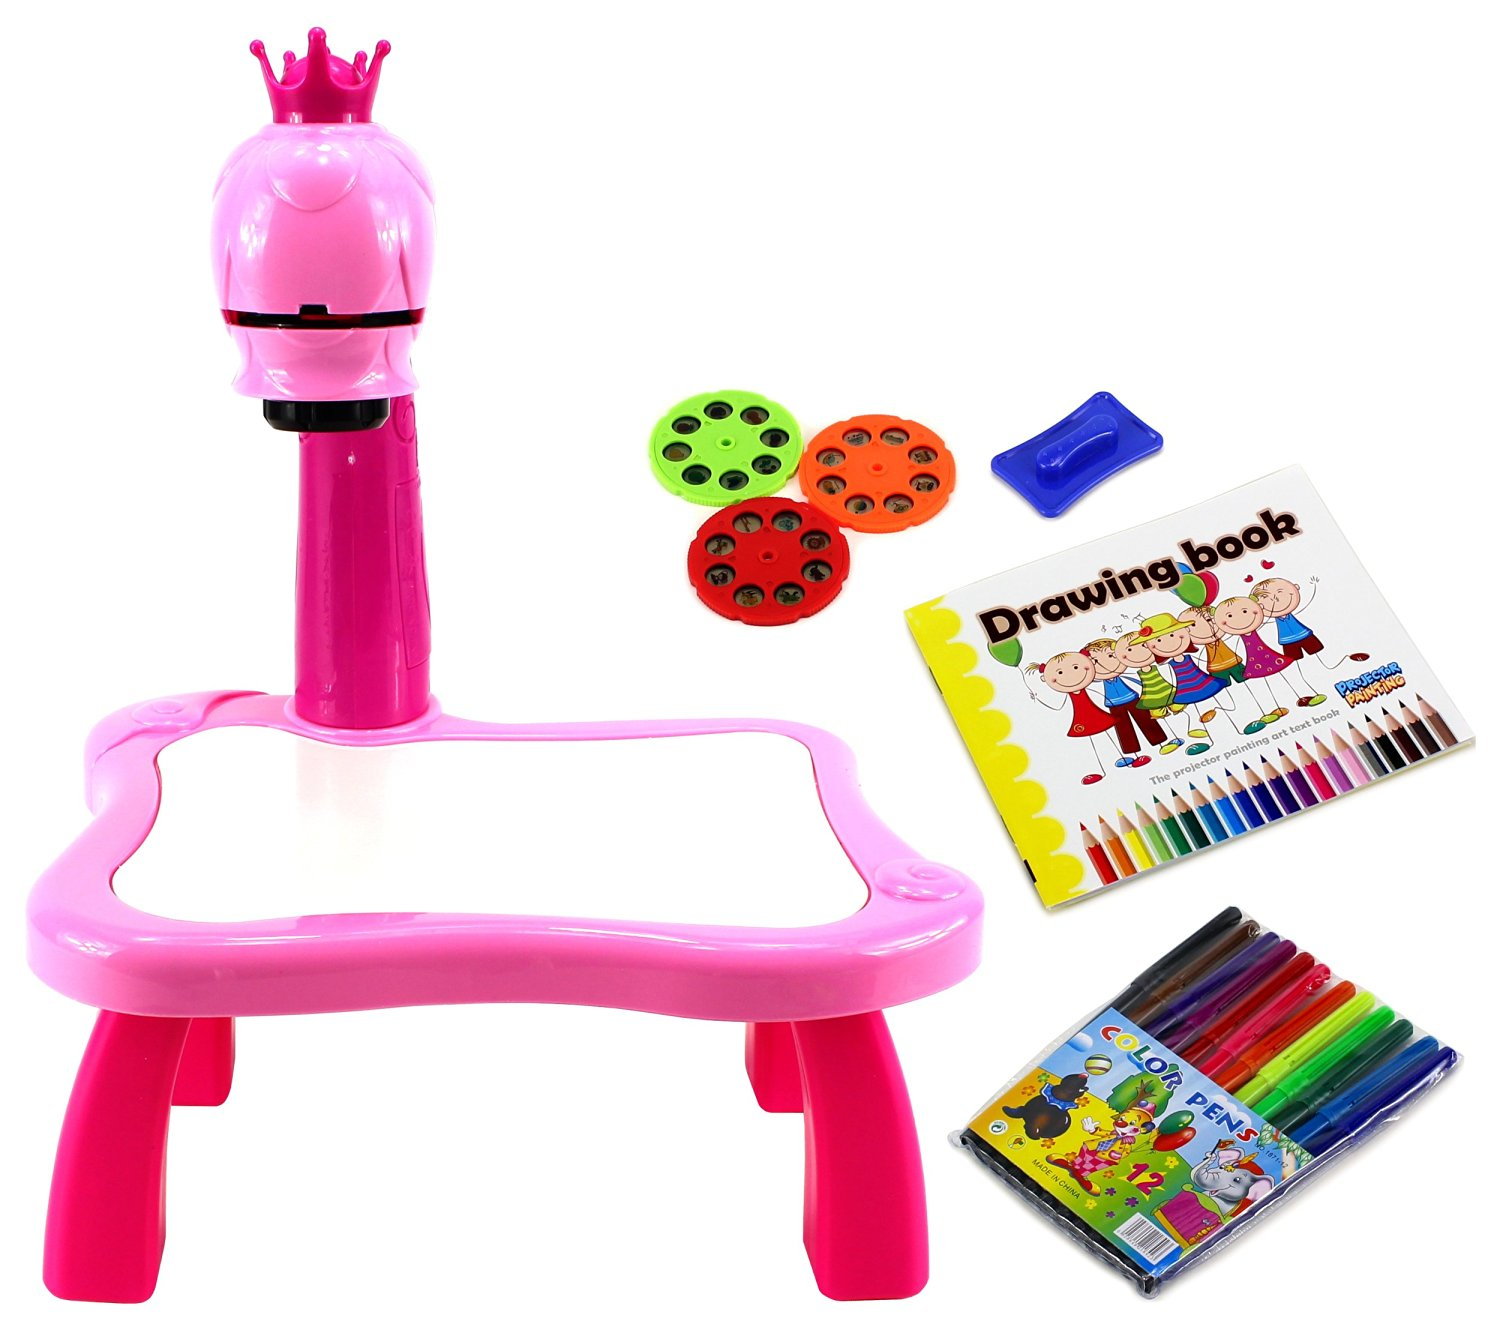 Velocity Toys Princess Learn & Draw Art Projector Wet Erase Board Children's Kid's Toy Playset w/ 24 Images, 12 Markers, Sketchbook, Music (Pink)